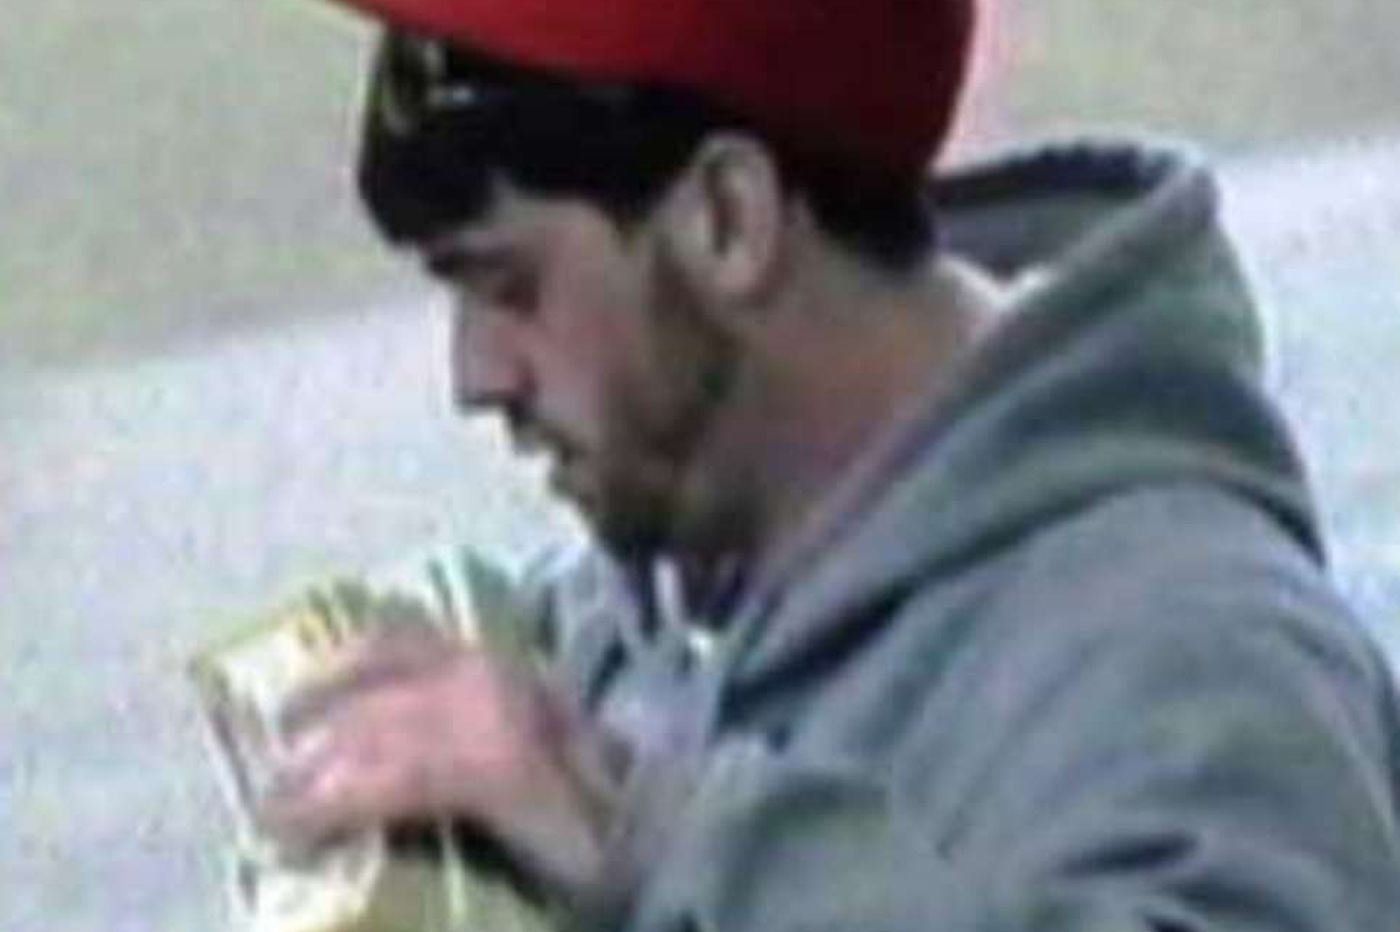 Cops, FBI searching for serial bank robber